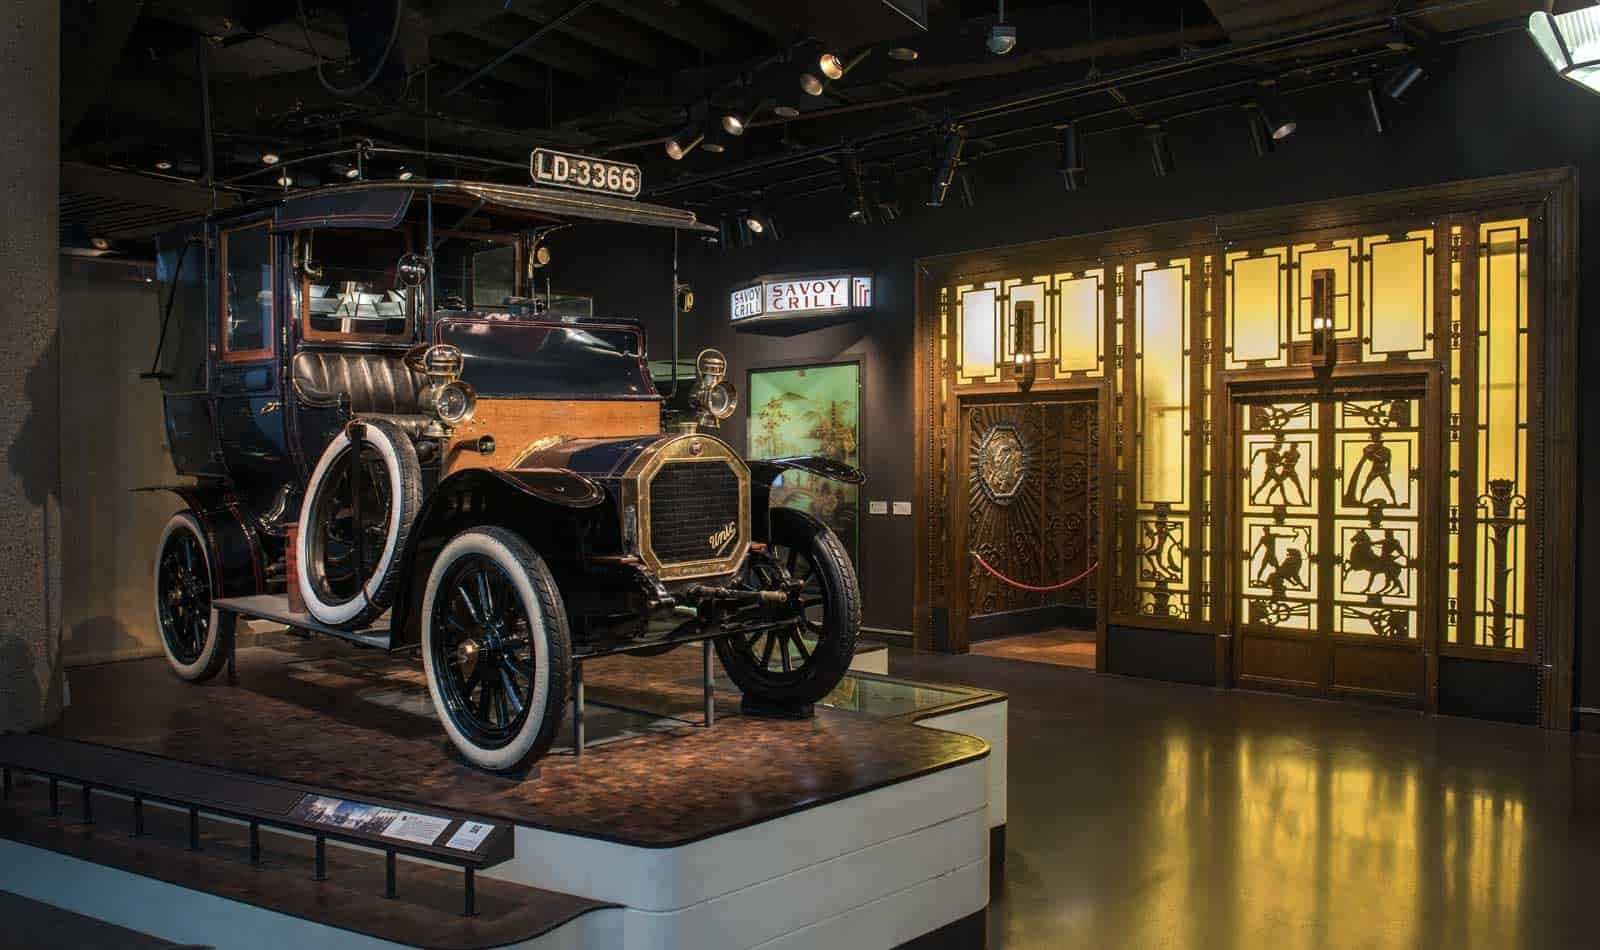 Top 5 Must-See Museums To Explore While in London! [2021 Guide]